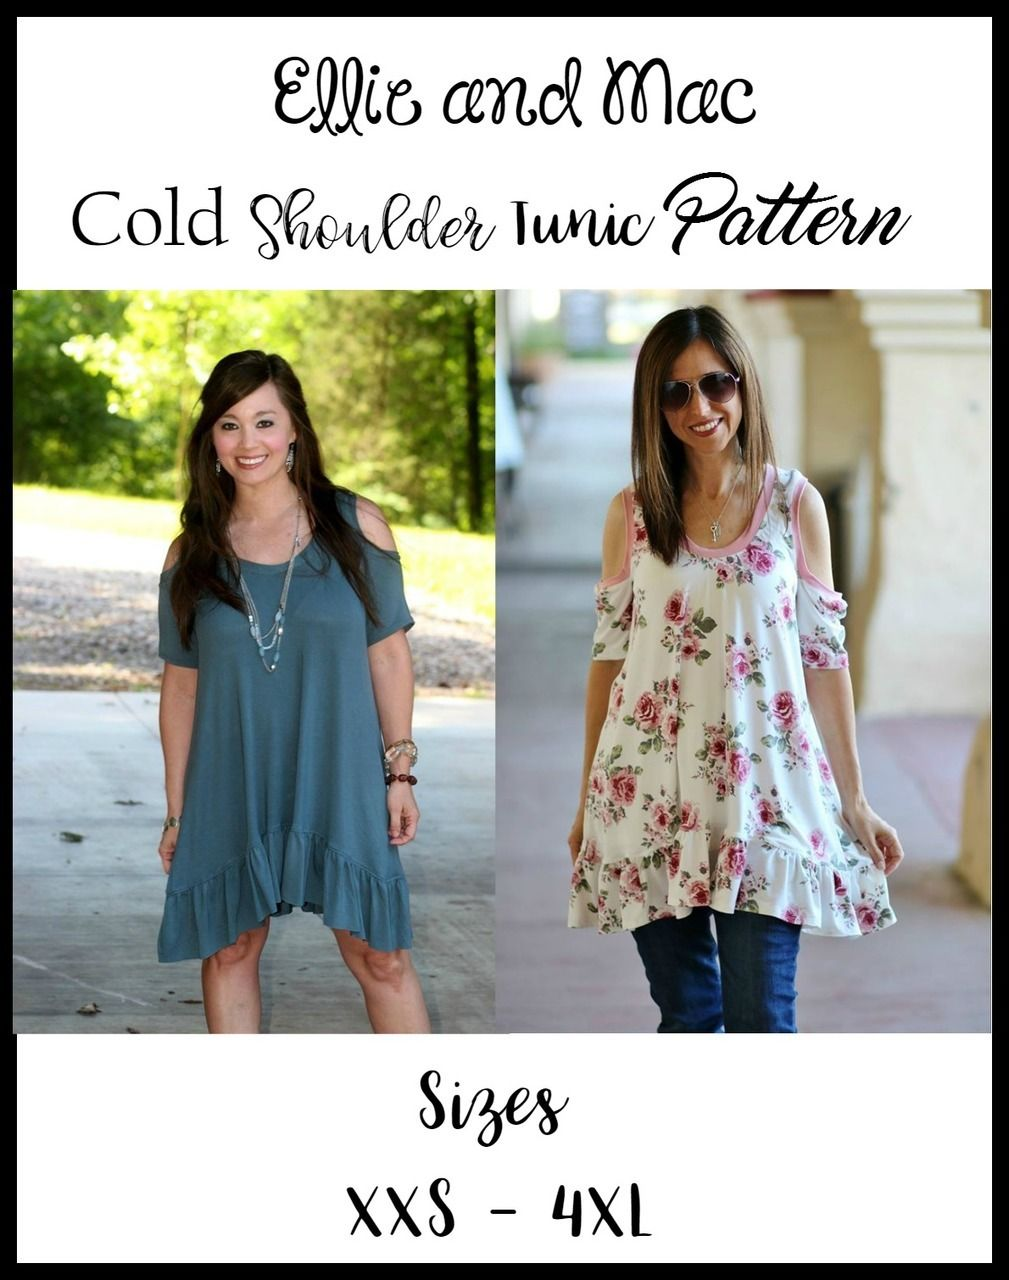 fc493f3aafd Teen / Women's Cold Shoulder Tunic Top PDF Sewing Pattern by Ellie and Mac